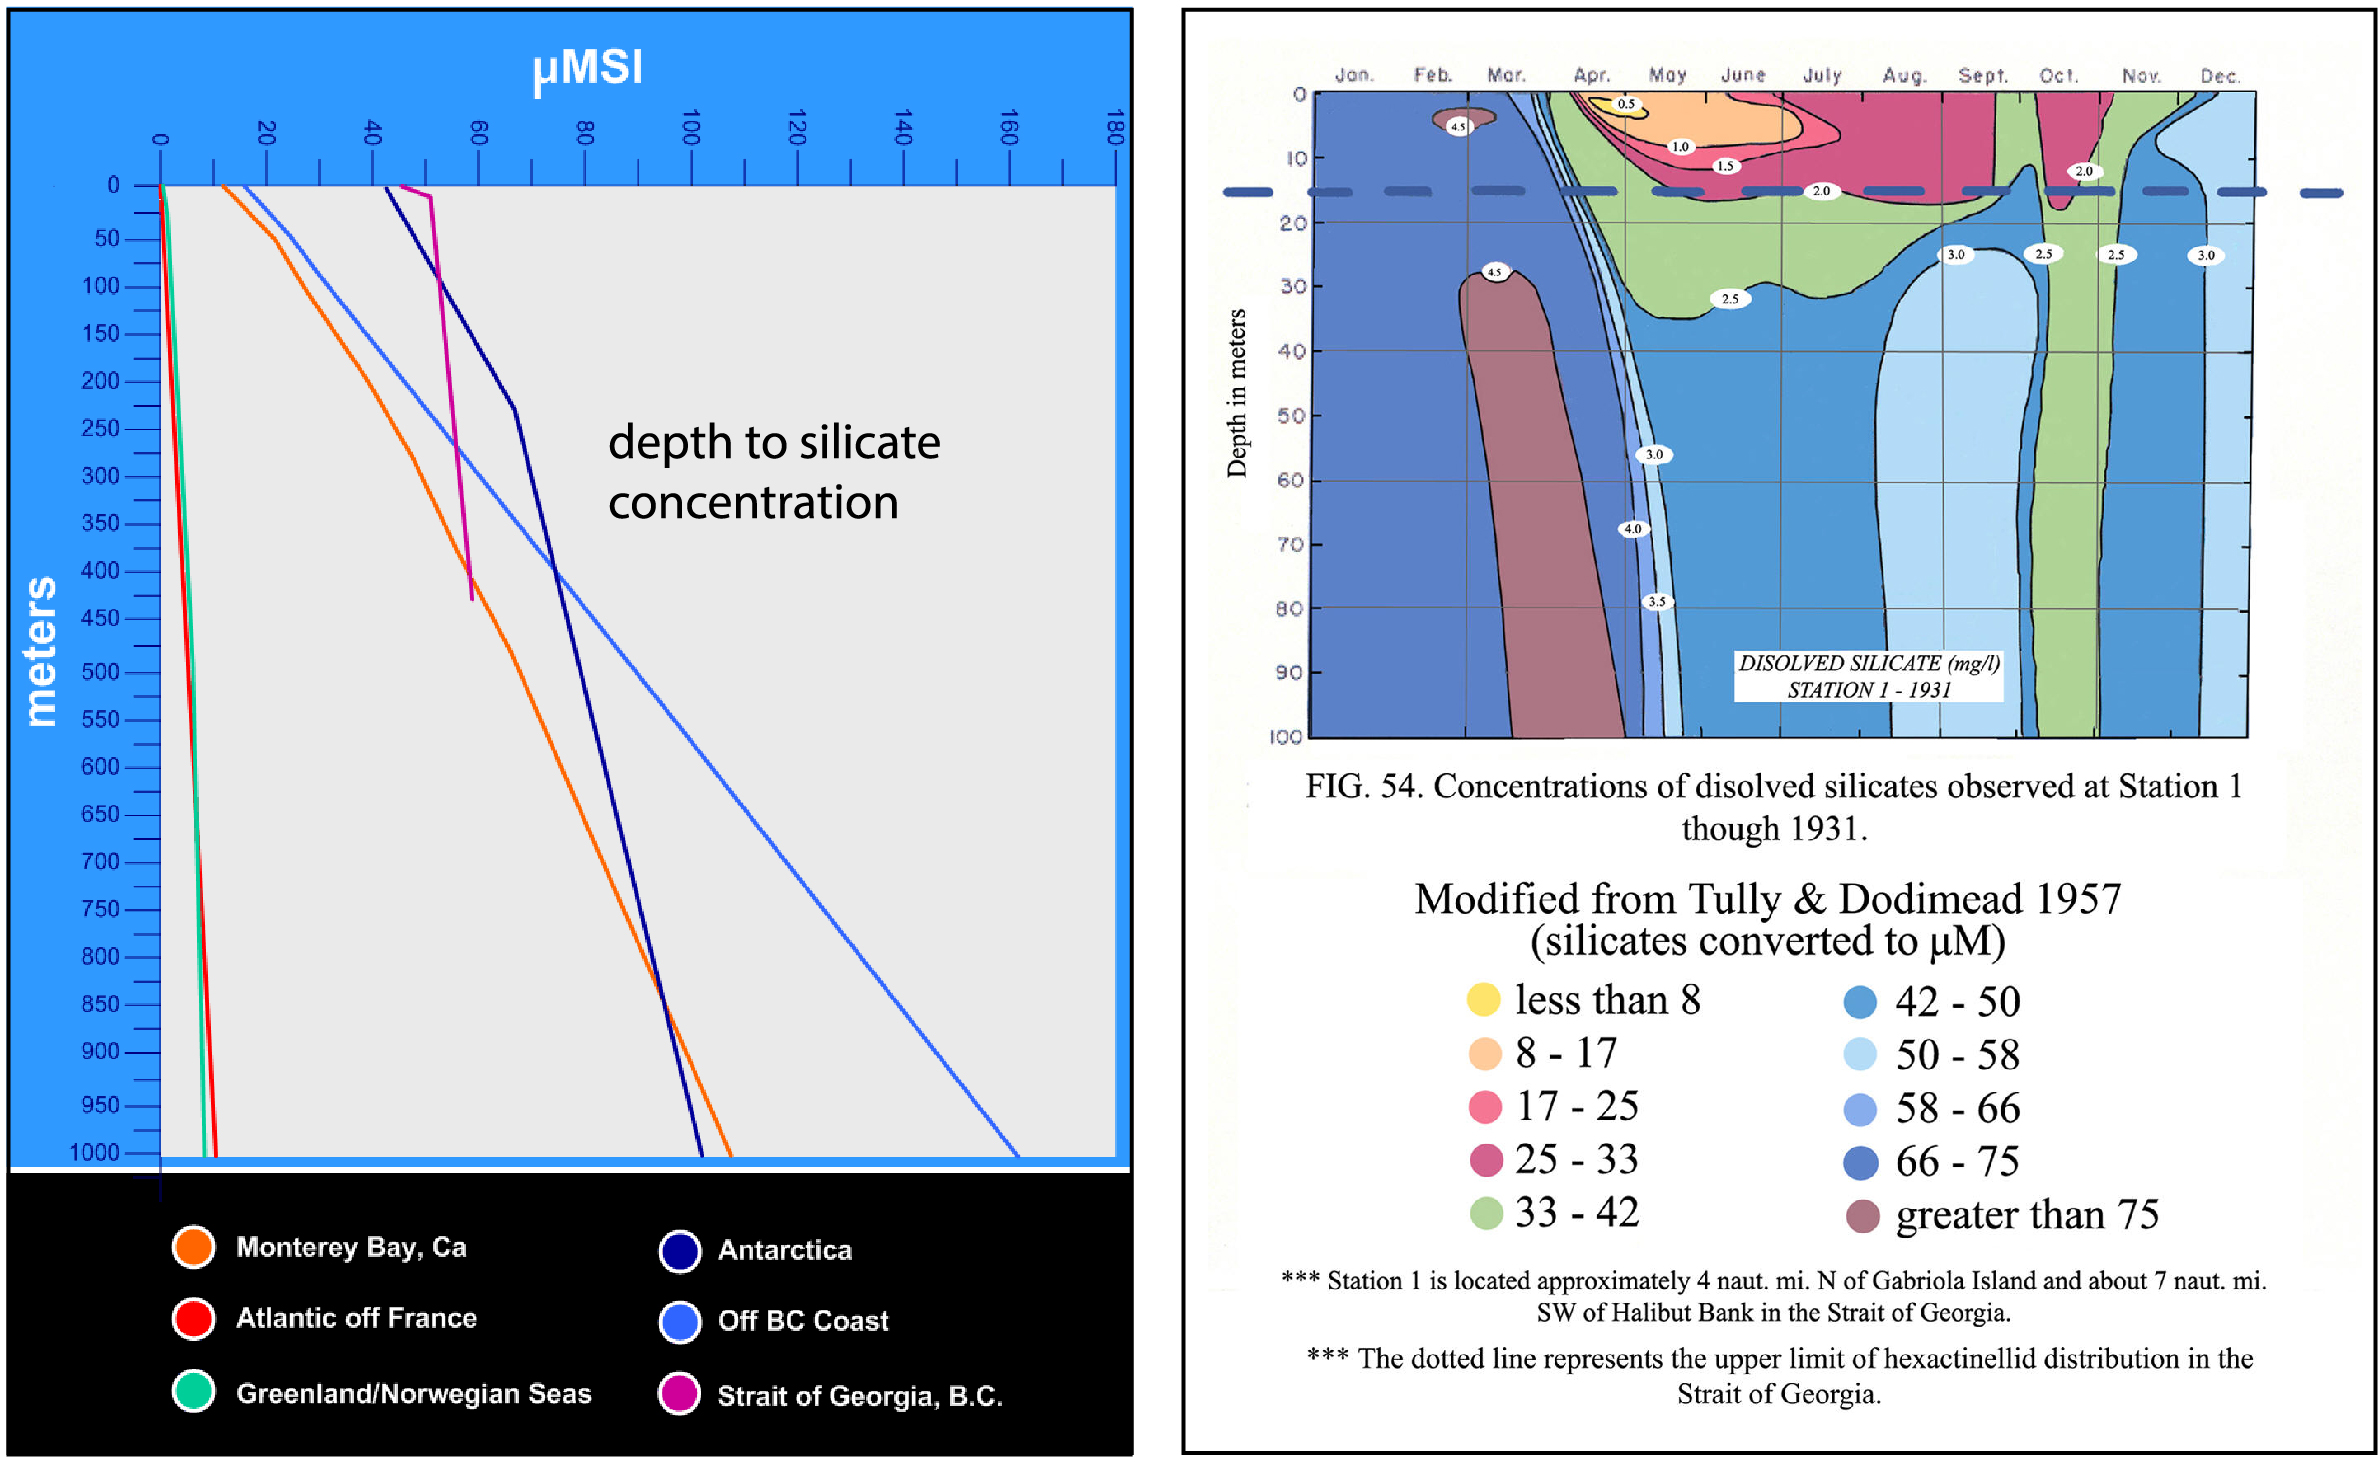 Charts showing silicate concentrations in various seas and depths.  The shallowest record (2m depth) is in Seymour Narrows where high silicate levels occur throughout the water column due to vertical mixing (Thomson et al. 1980 & unpublished info 2003. The highest silica concentration, near the surface, is in the Strait of Georgia (magenta line).